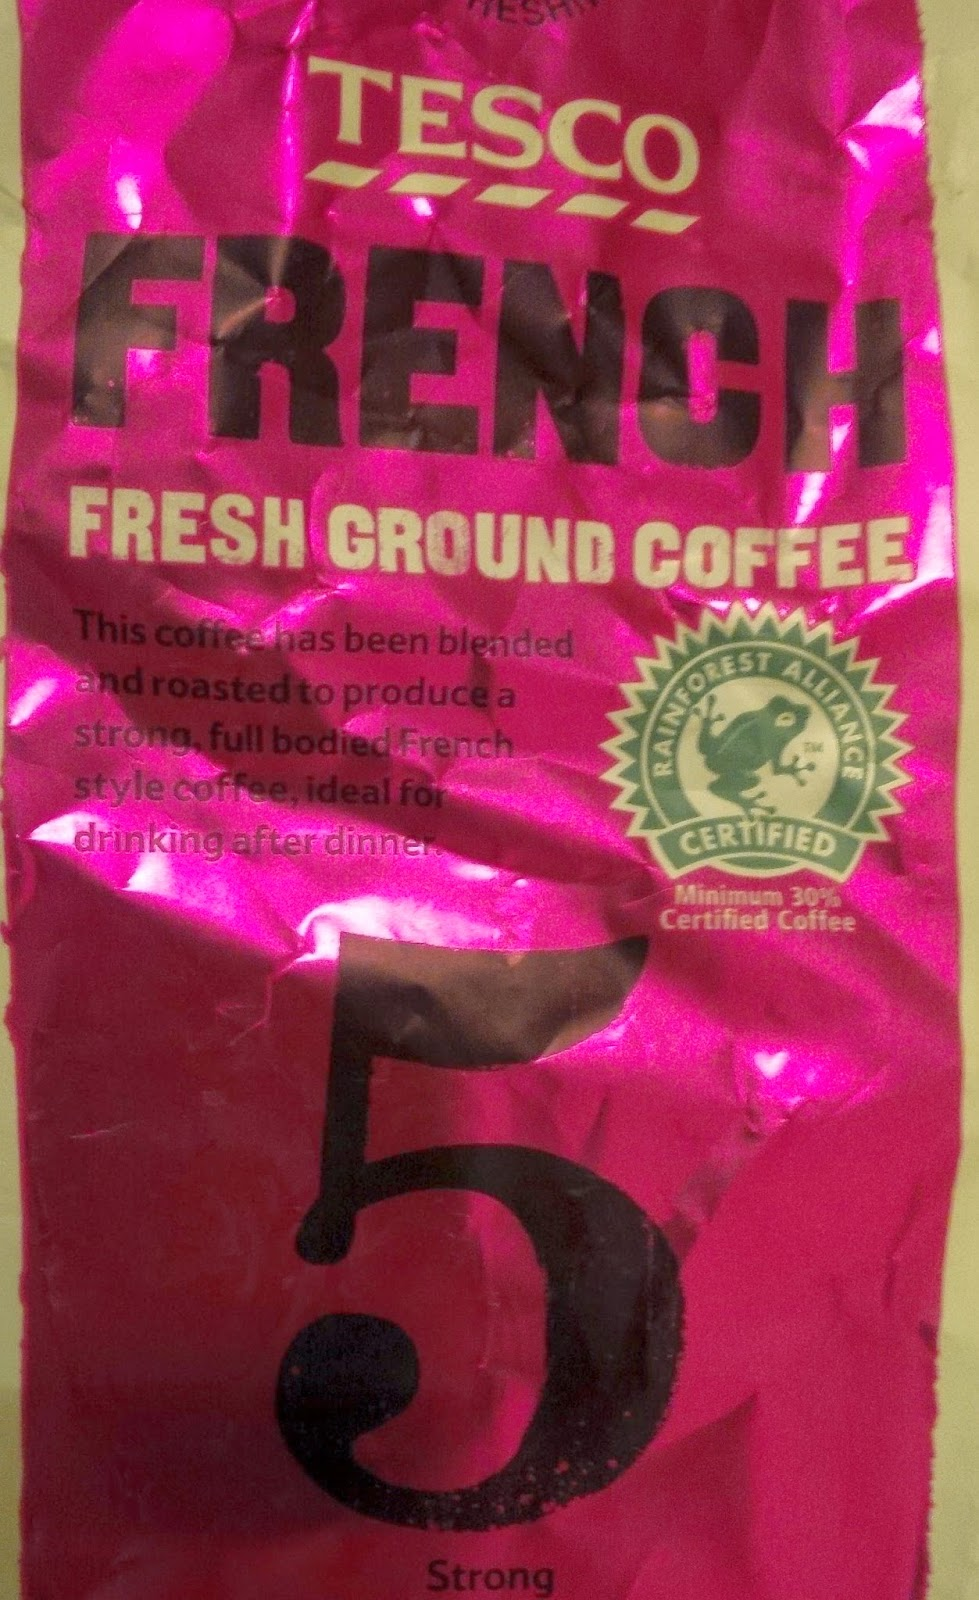 Smell The Tea And Coffee Tesco French Fresh Ground Coffee 5